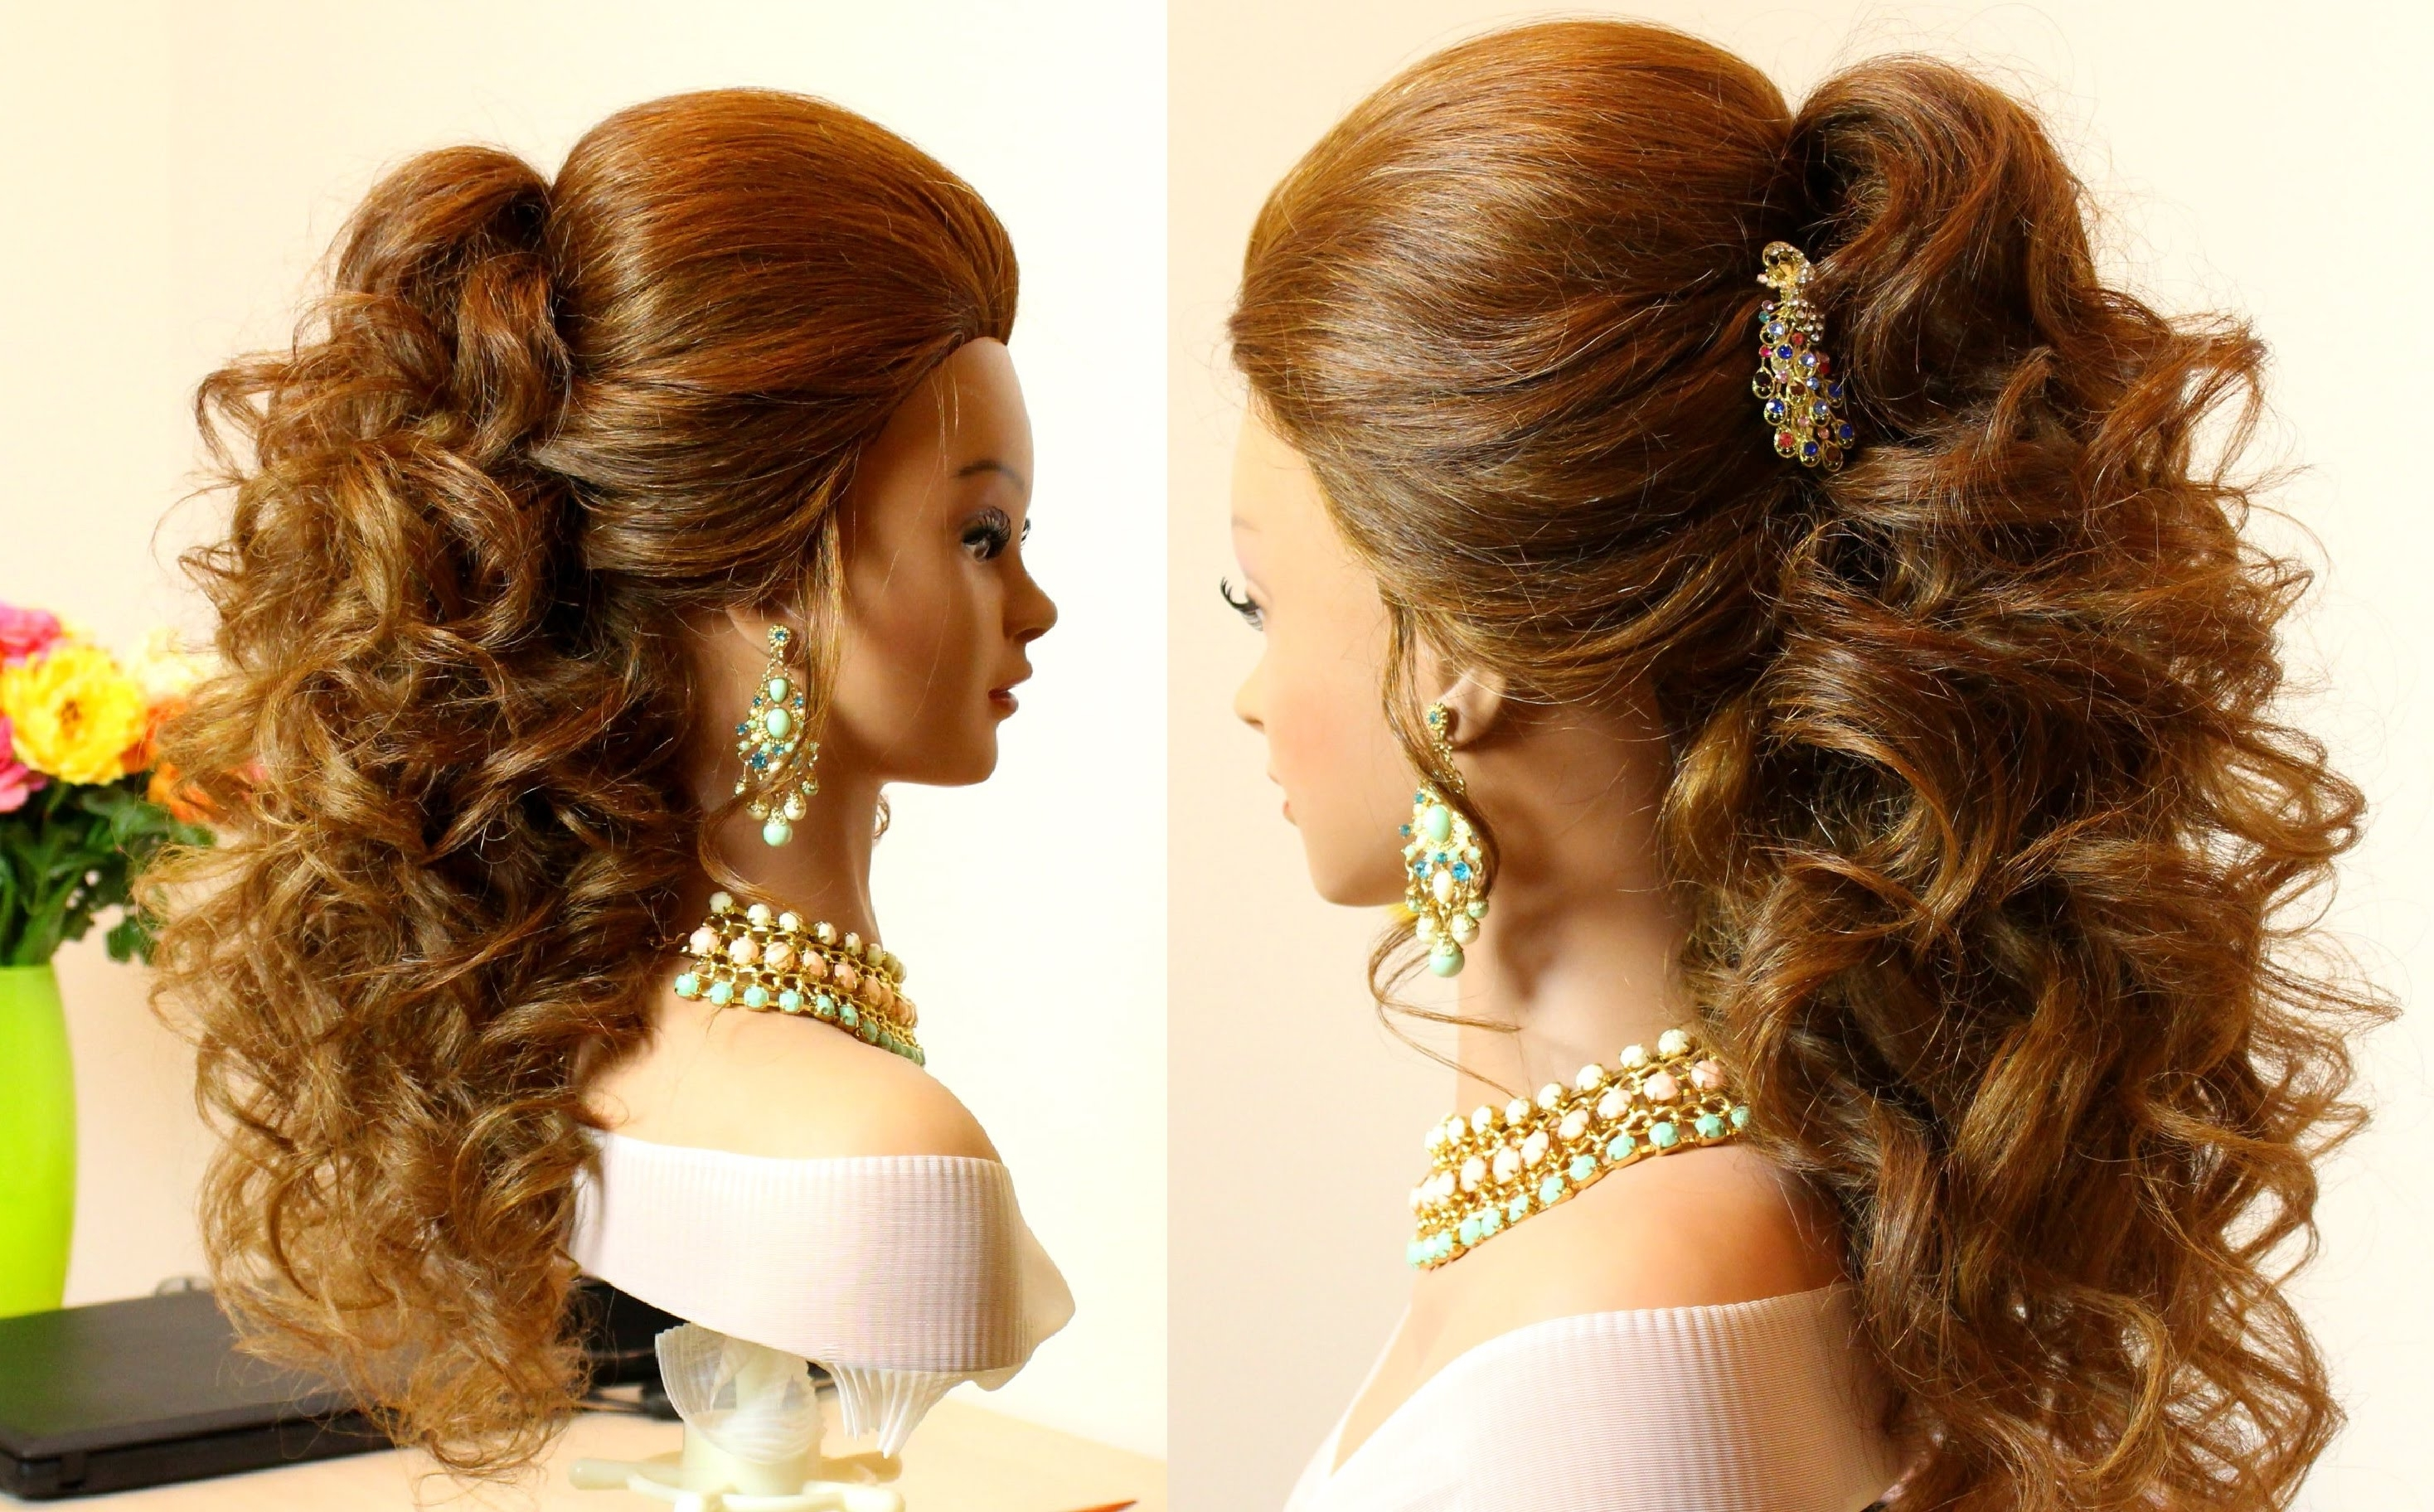 Recent Wedding Hairstyles For Long Layered Hair In Medium Long Layered Hair – Hairstyle For Women & Man (View 3 of 15)